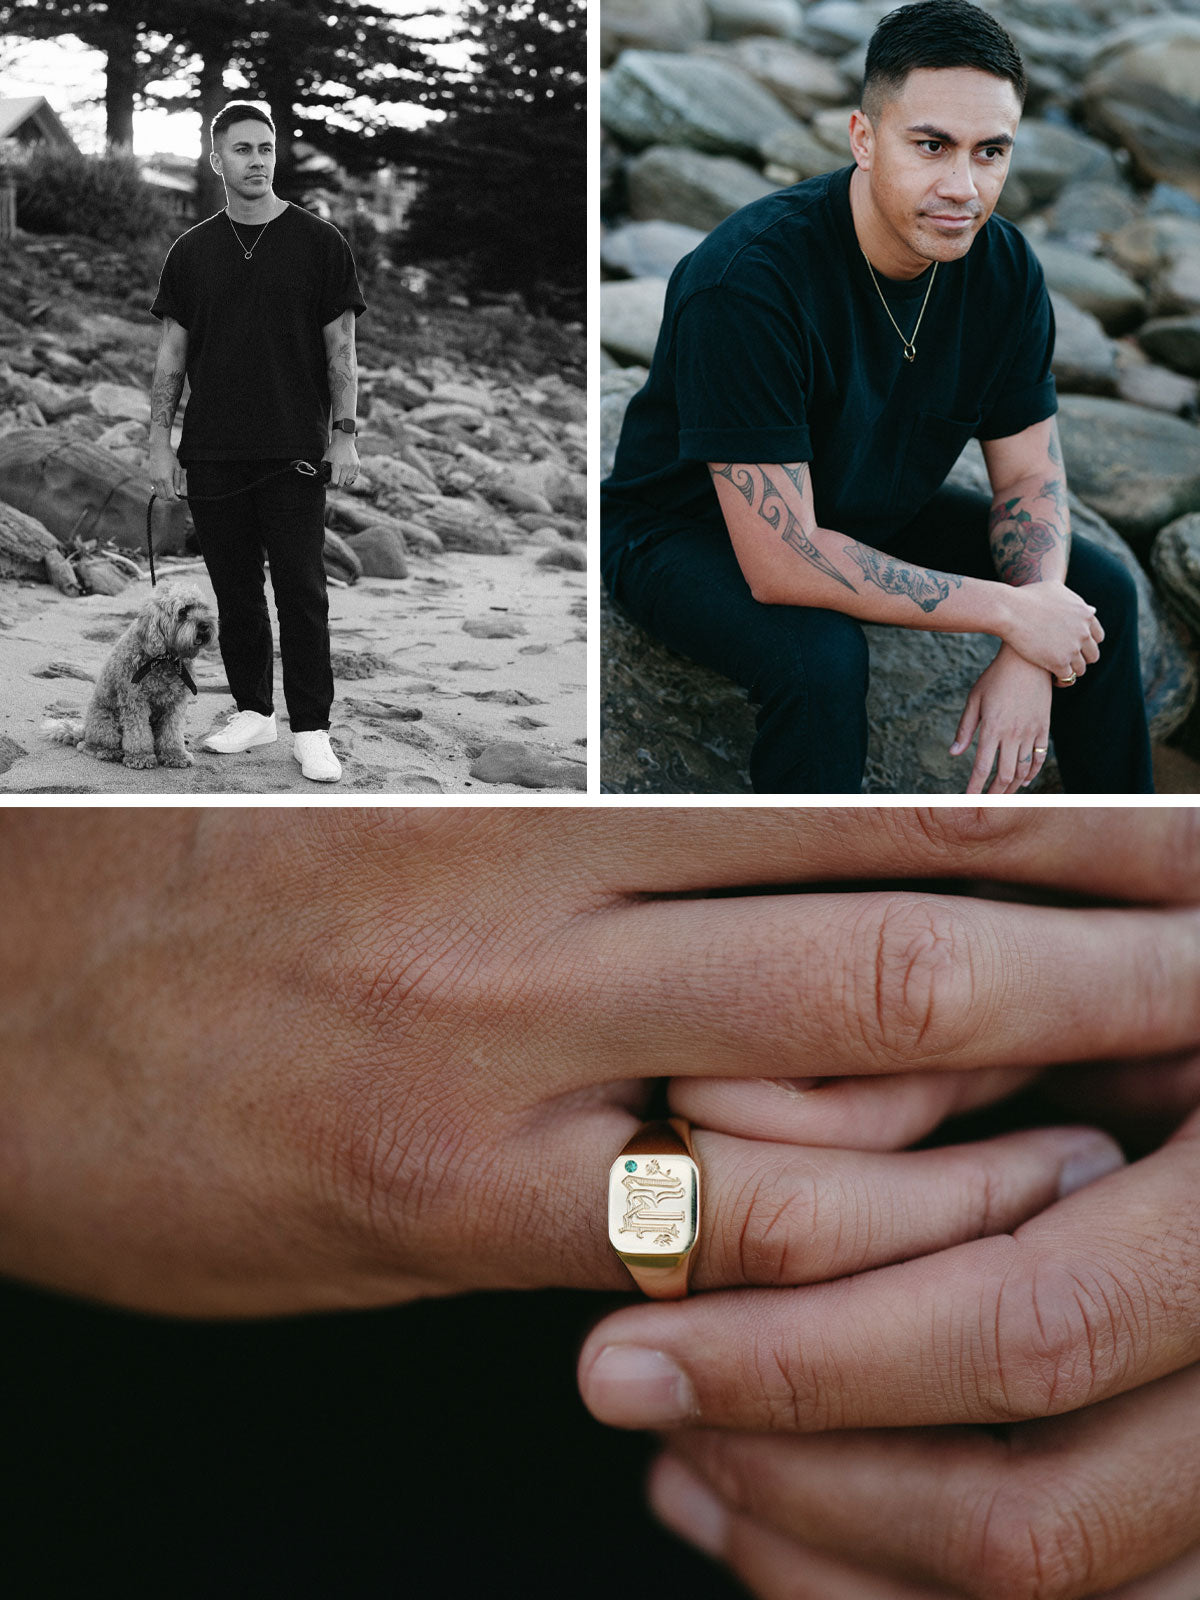 Reeve wearing a black t-shirt and standing at the beach with his dog an a leash and another image of a close up of his yellow gold signet ring